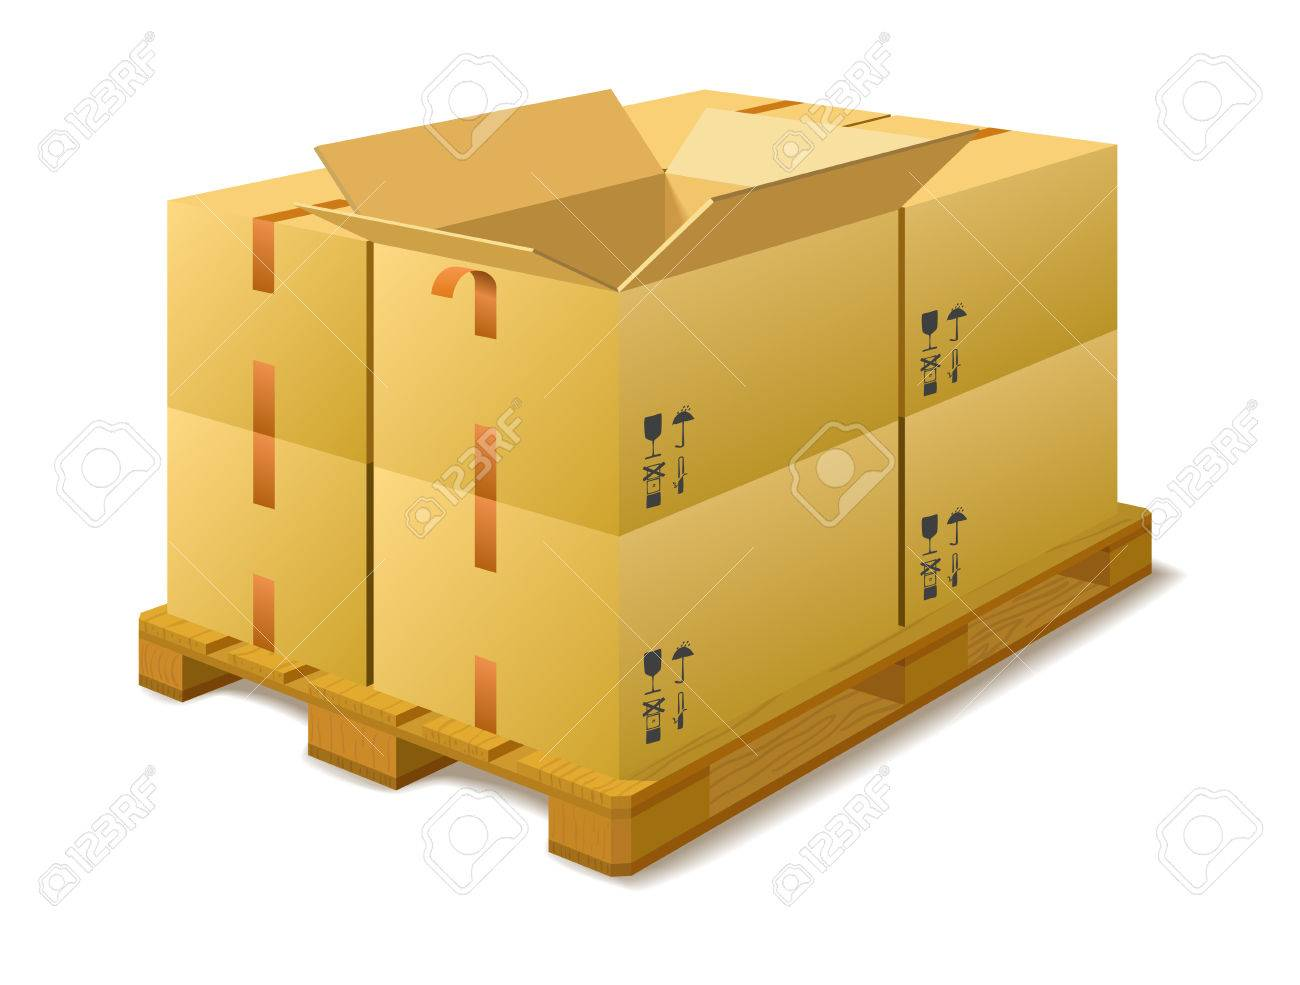 Cardboard boxes on a pallet in a warehouse on a white background Stock Vector - 24959019